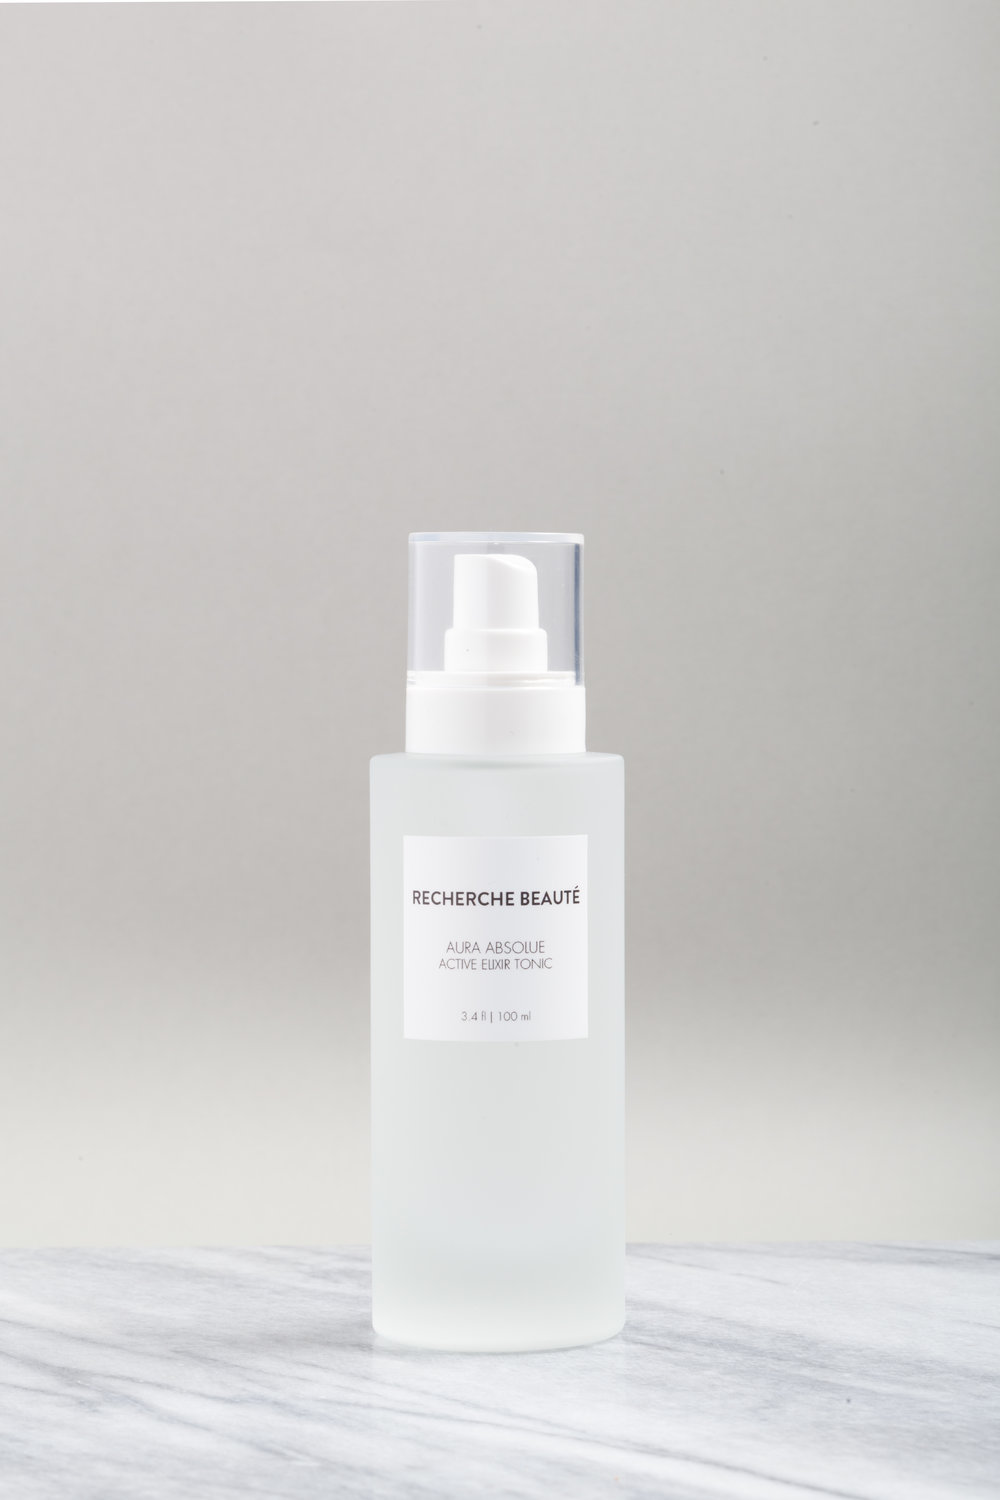 Which is better: tonic or micellar water Ways to use, testimonials